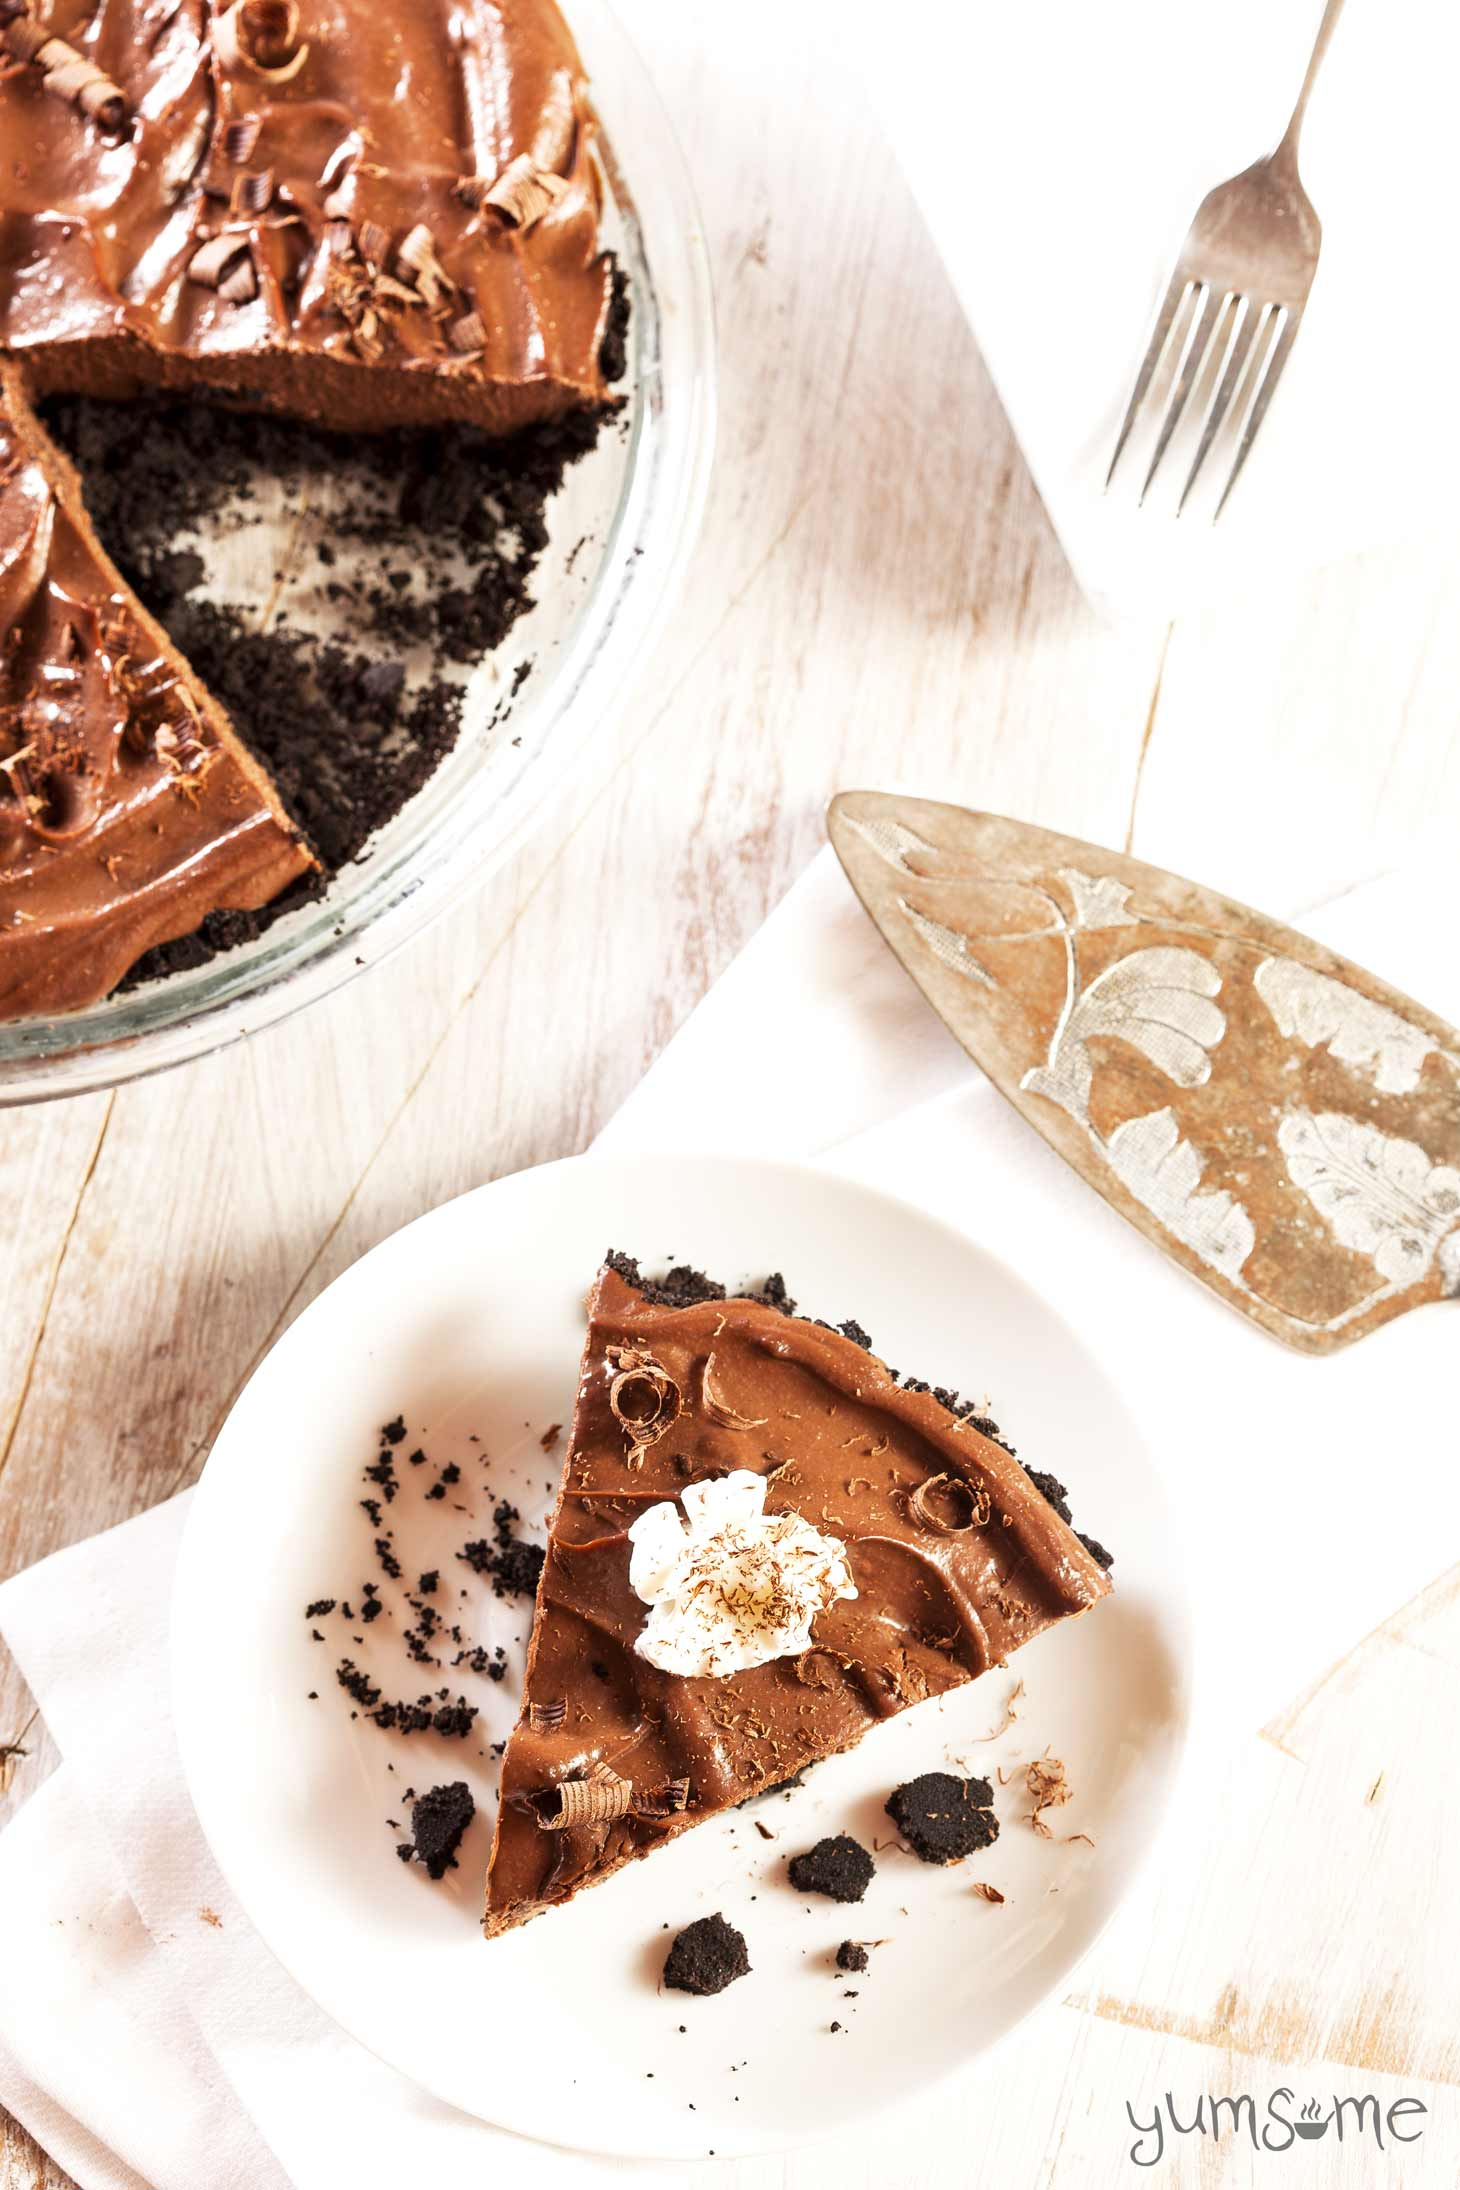 My decadent raw vegan chocolate tart is a great alternative to traditional Christmas pudding. It's gluten- and soy-free too, and contains no refined sugar.   yumsome.com